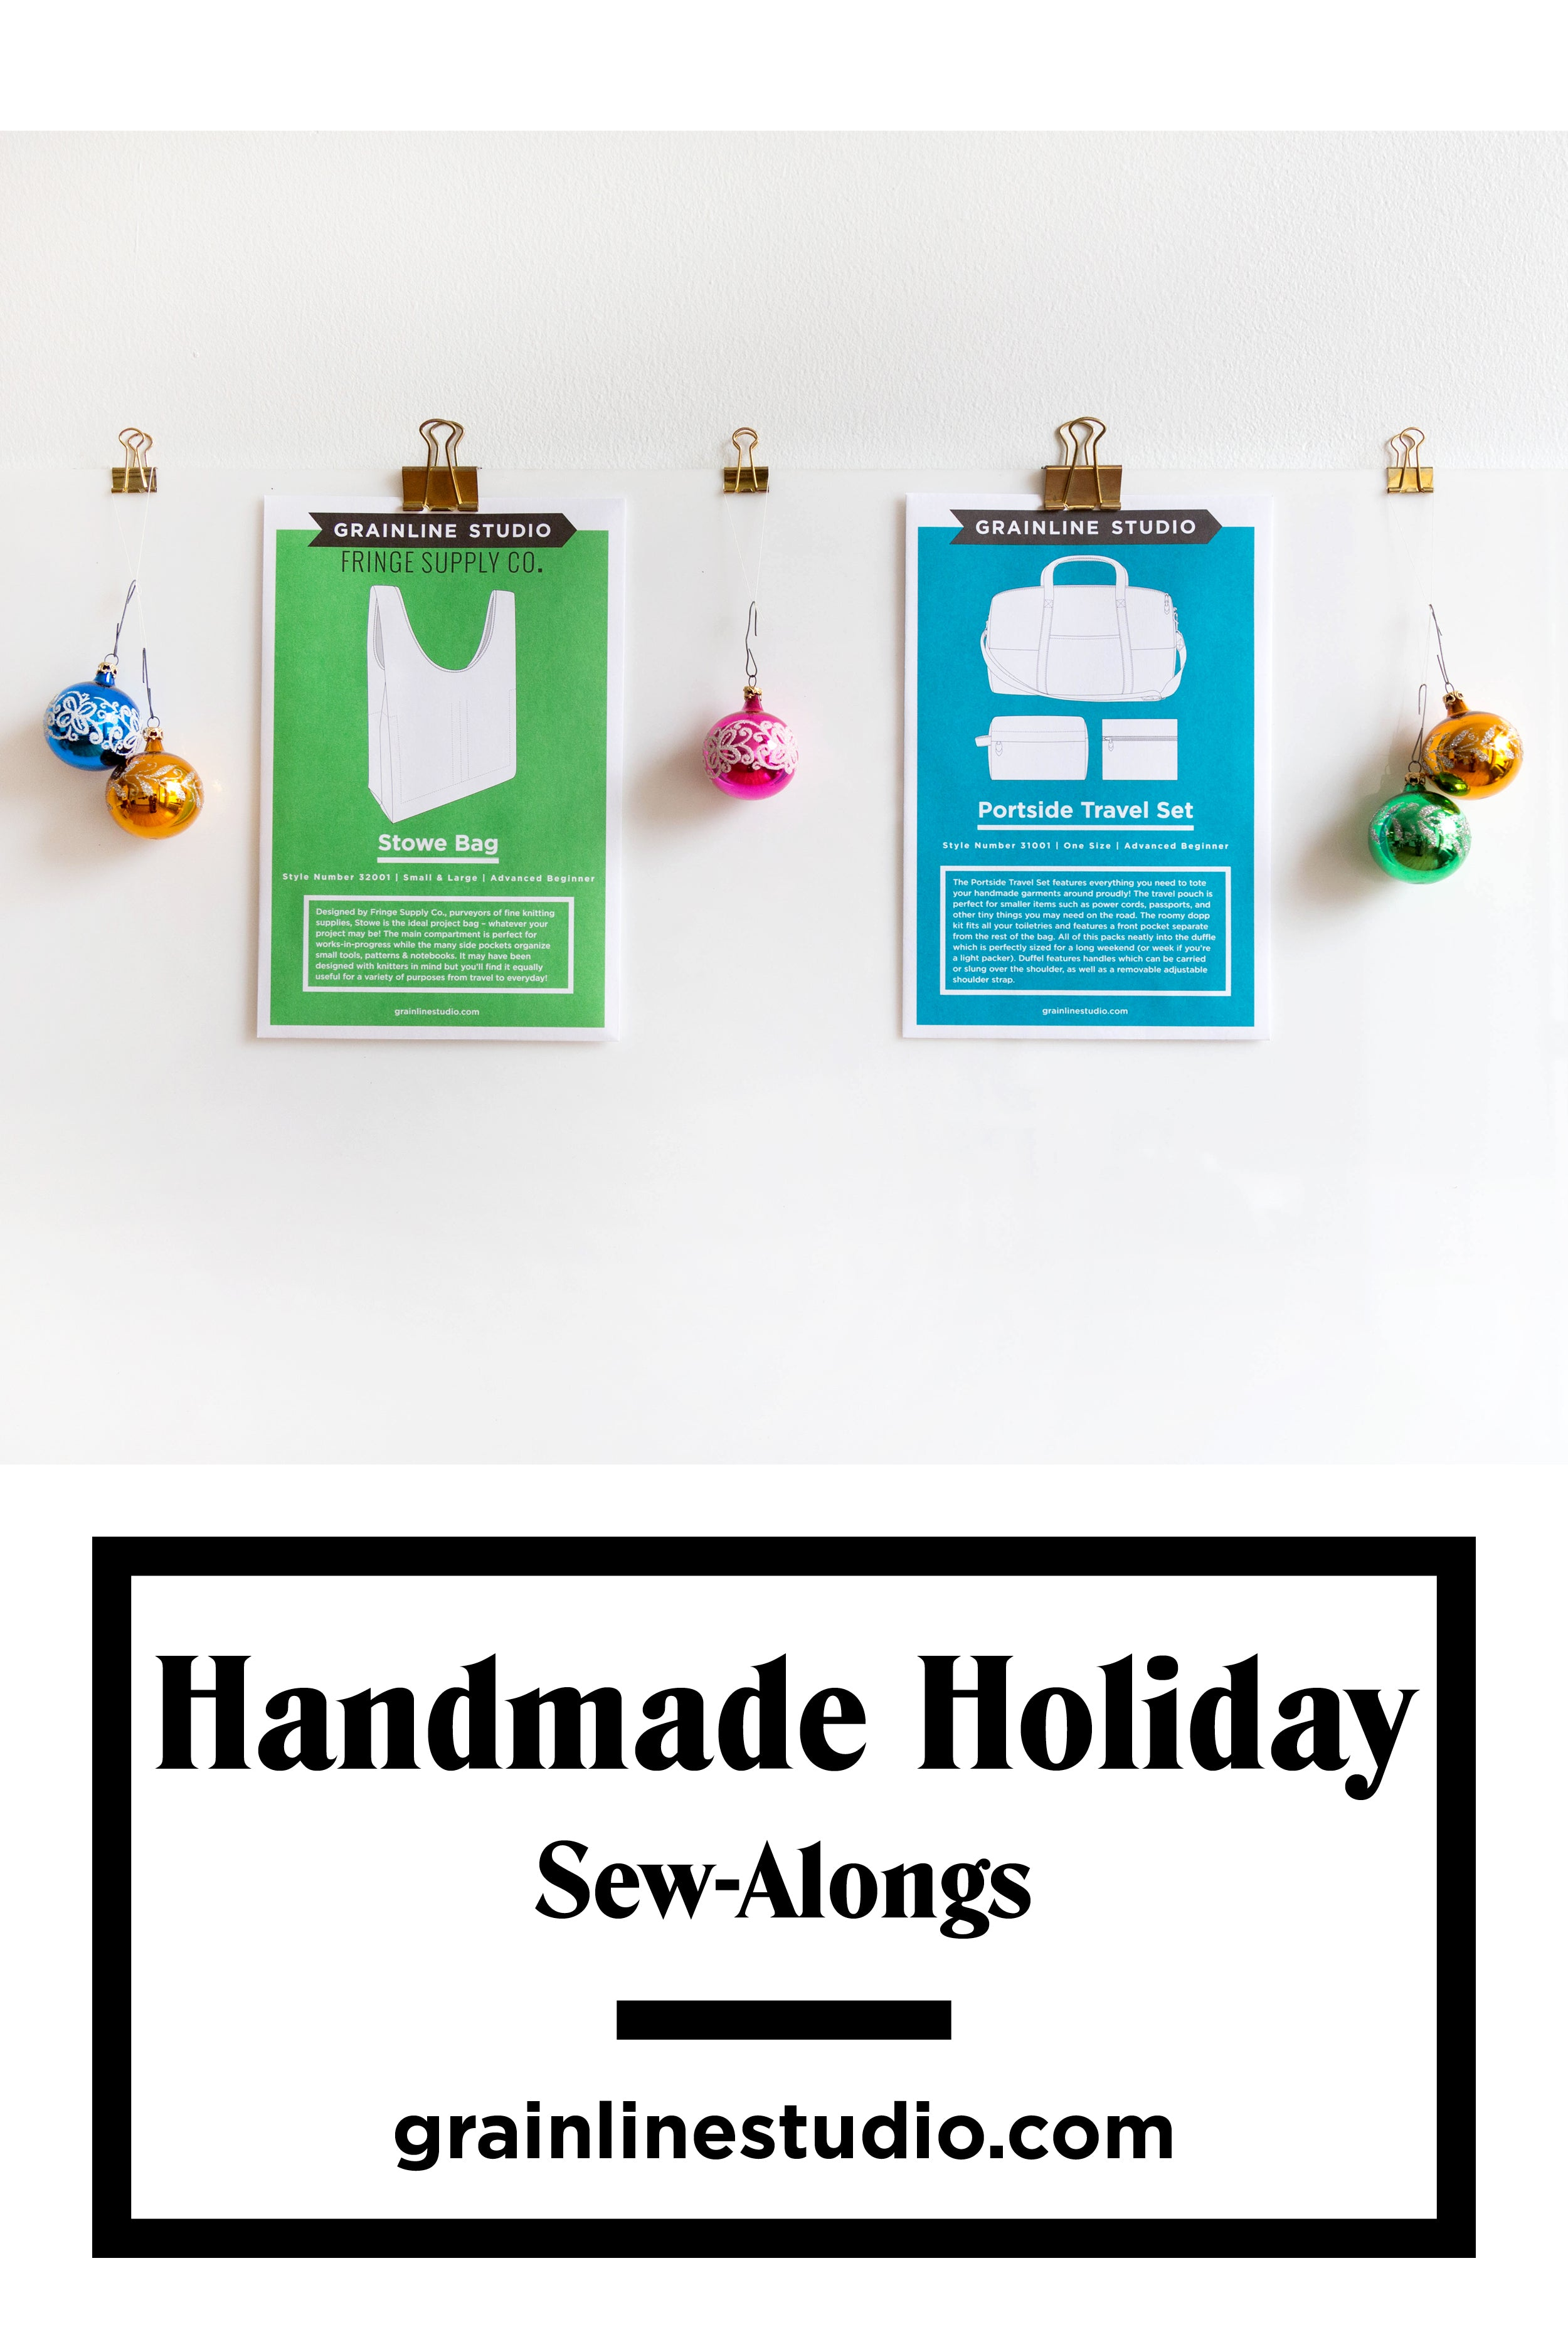 Handmade Holiday Sew-Alongs with Grainline Studio